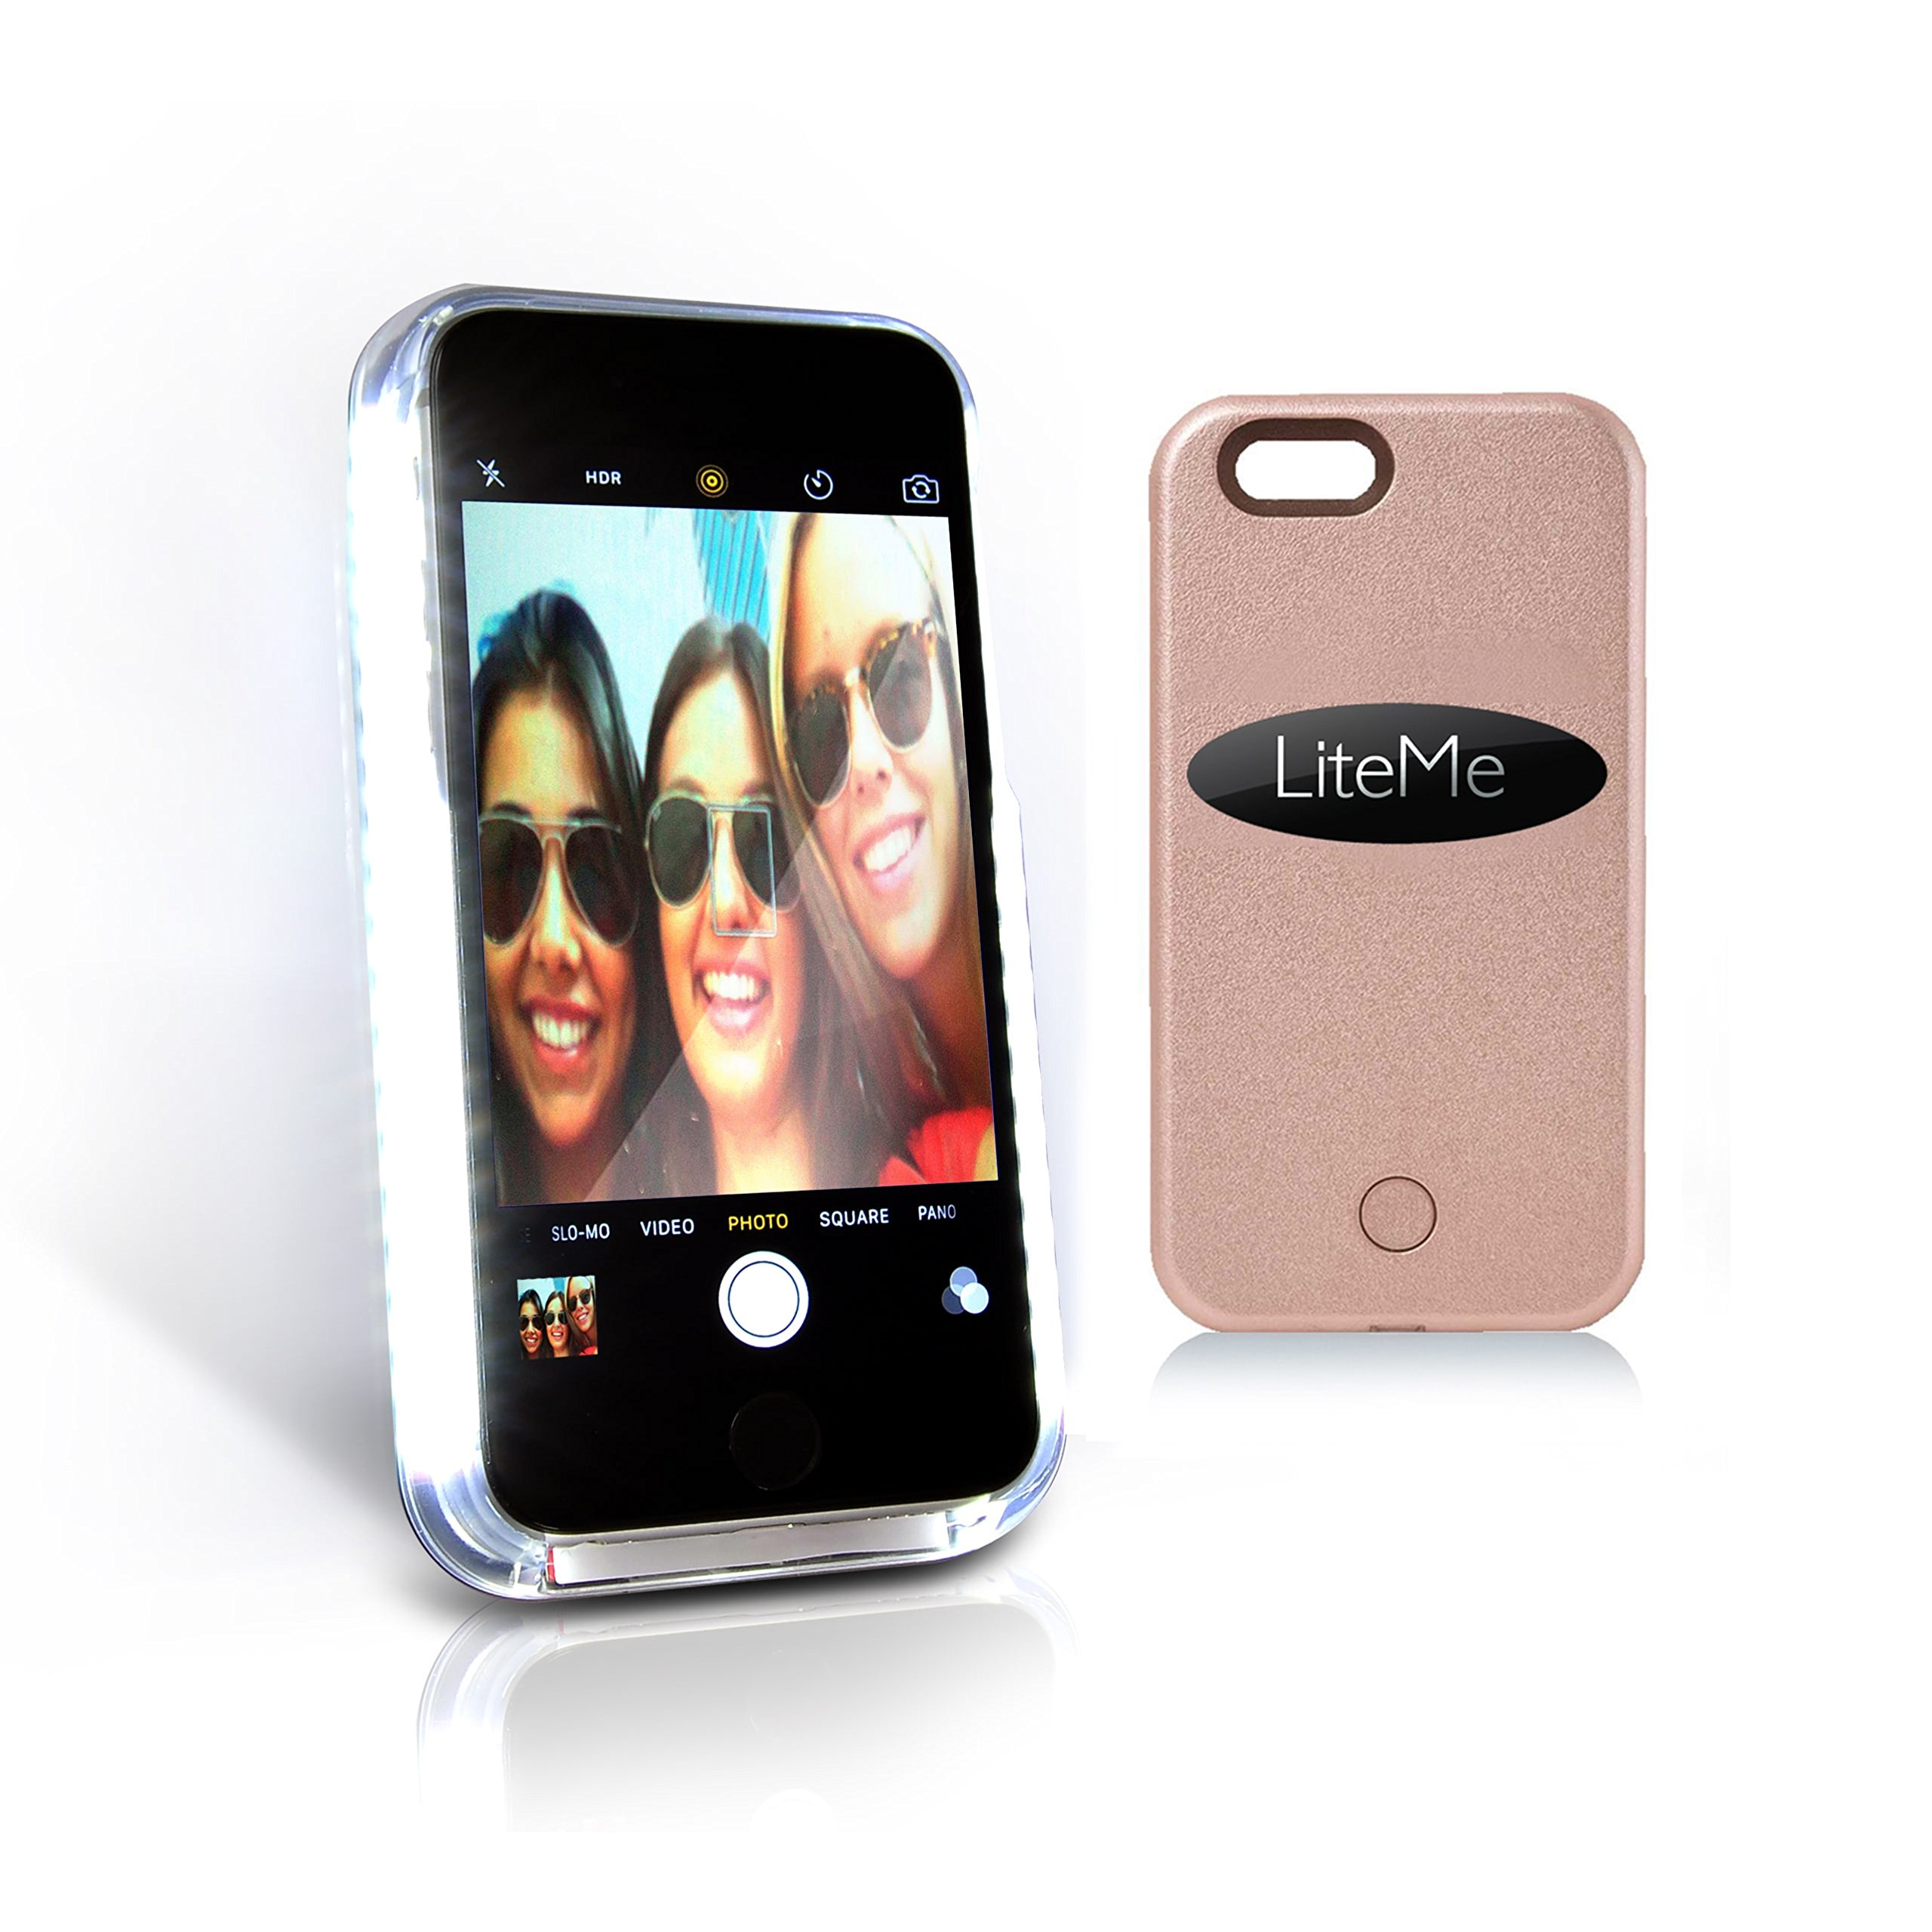 iPhone 6s Plus Phone Case - Lite-Me Selfie Lighted Smart Mobile Case with Built-in Power Bank, LED Lights - Heavy Duty Cellphone Protection Cover for Men/Women - SereneLife SLIP201BL (Blue)